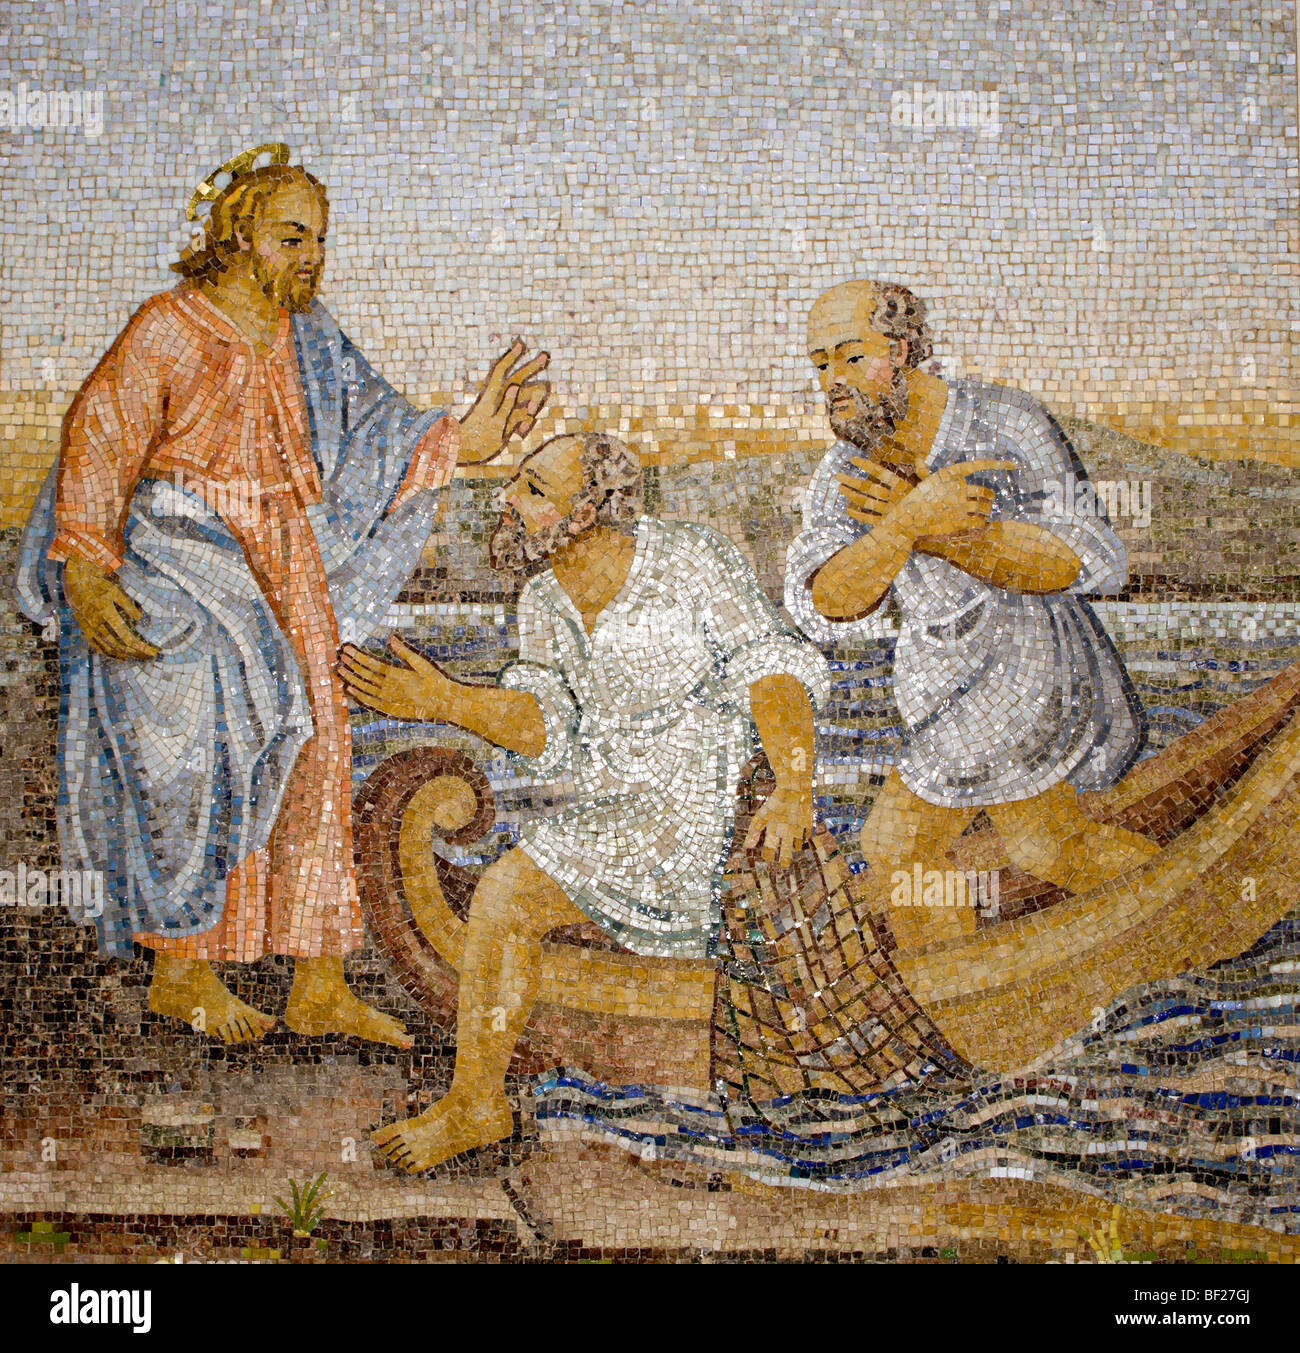 Rome - mosaic - miracle fishing from New Testament in basilica of st. Peters - Stock Image